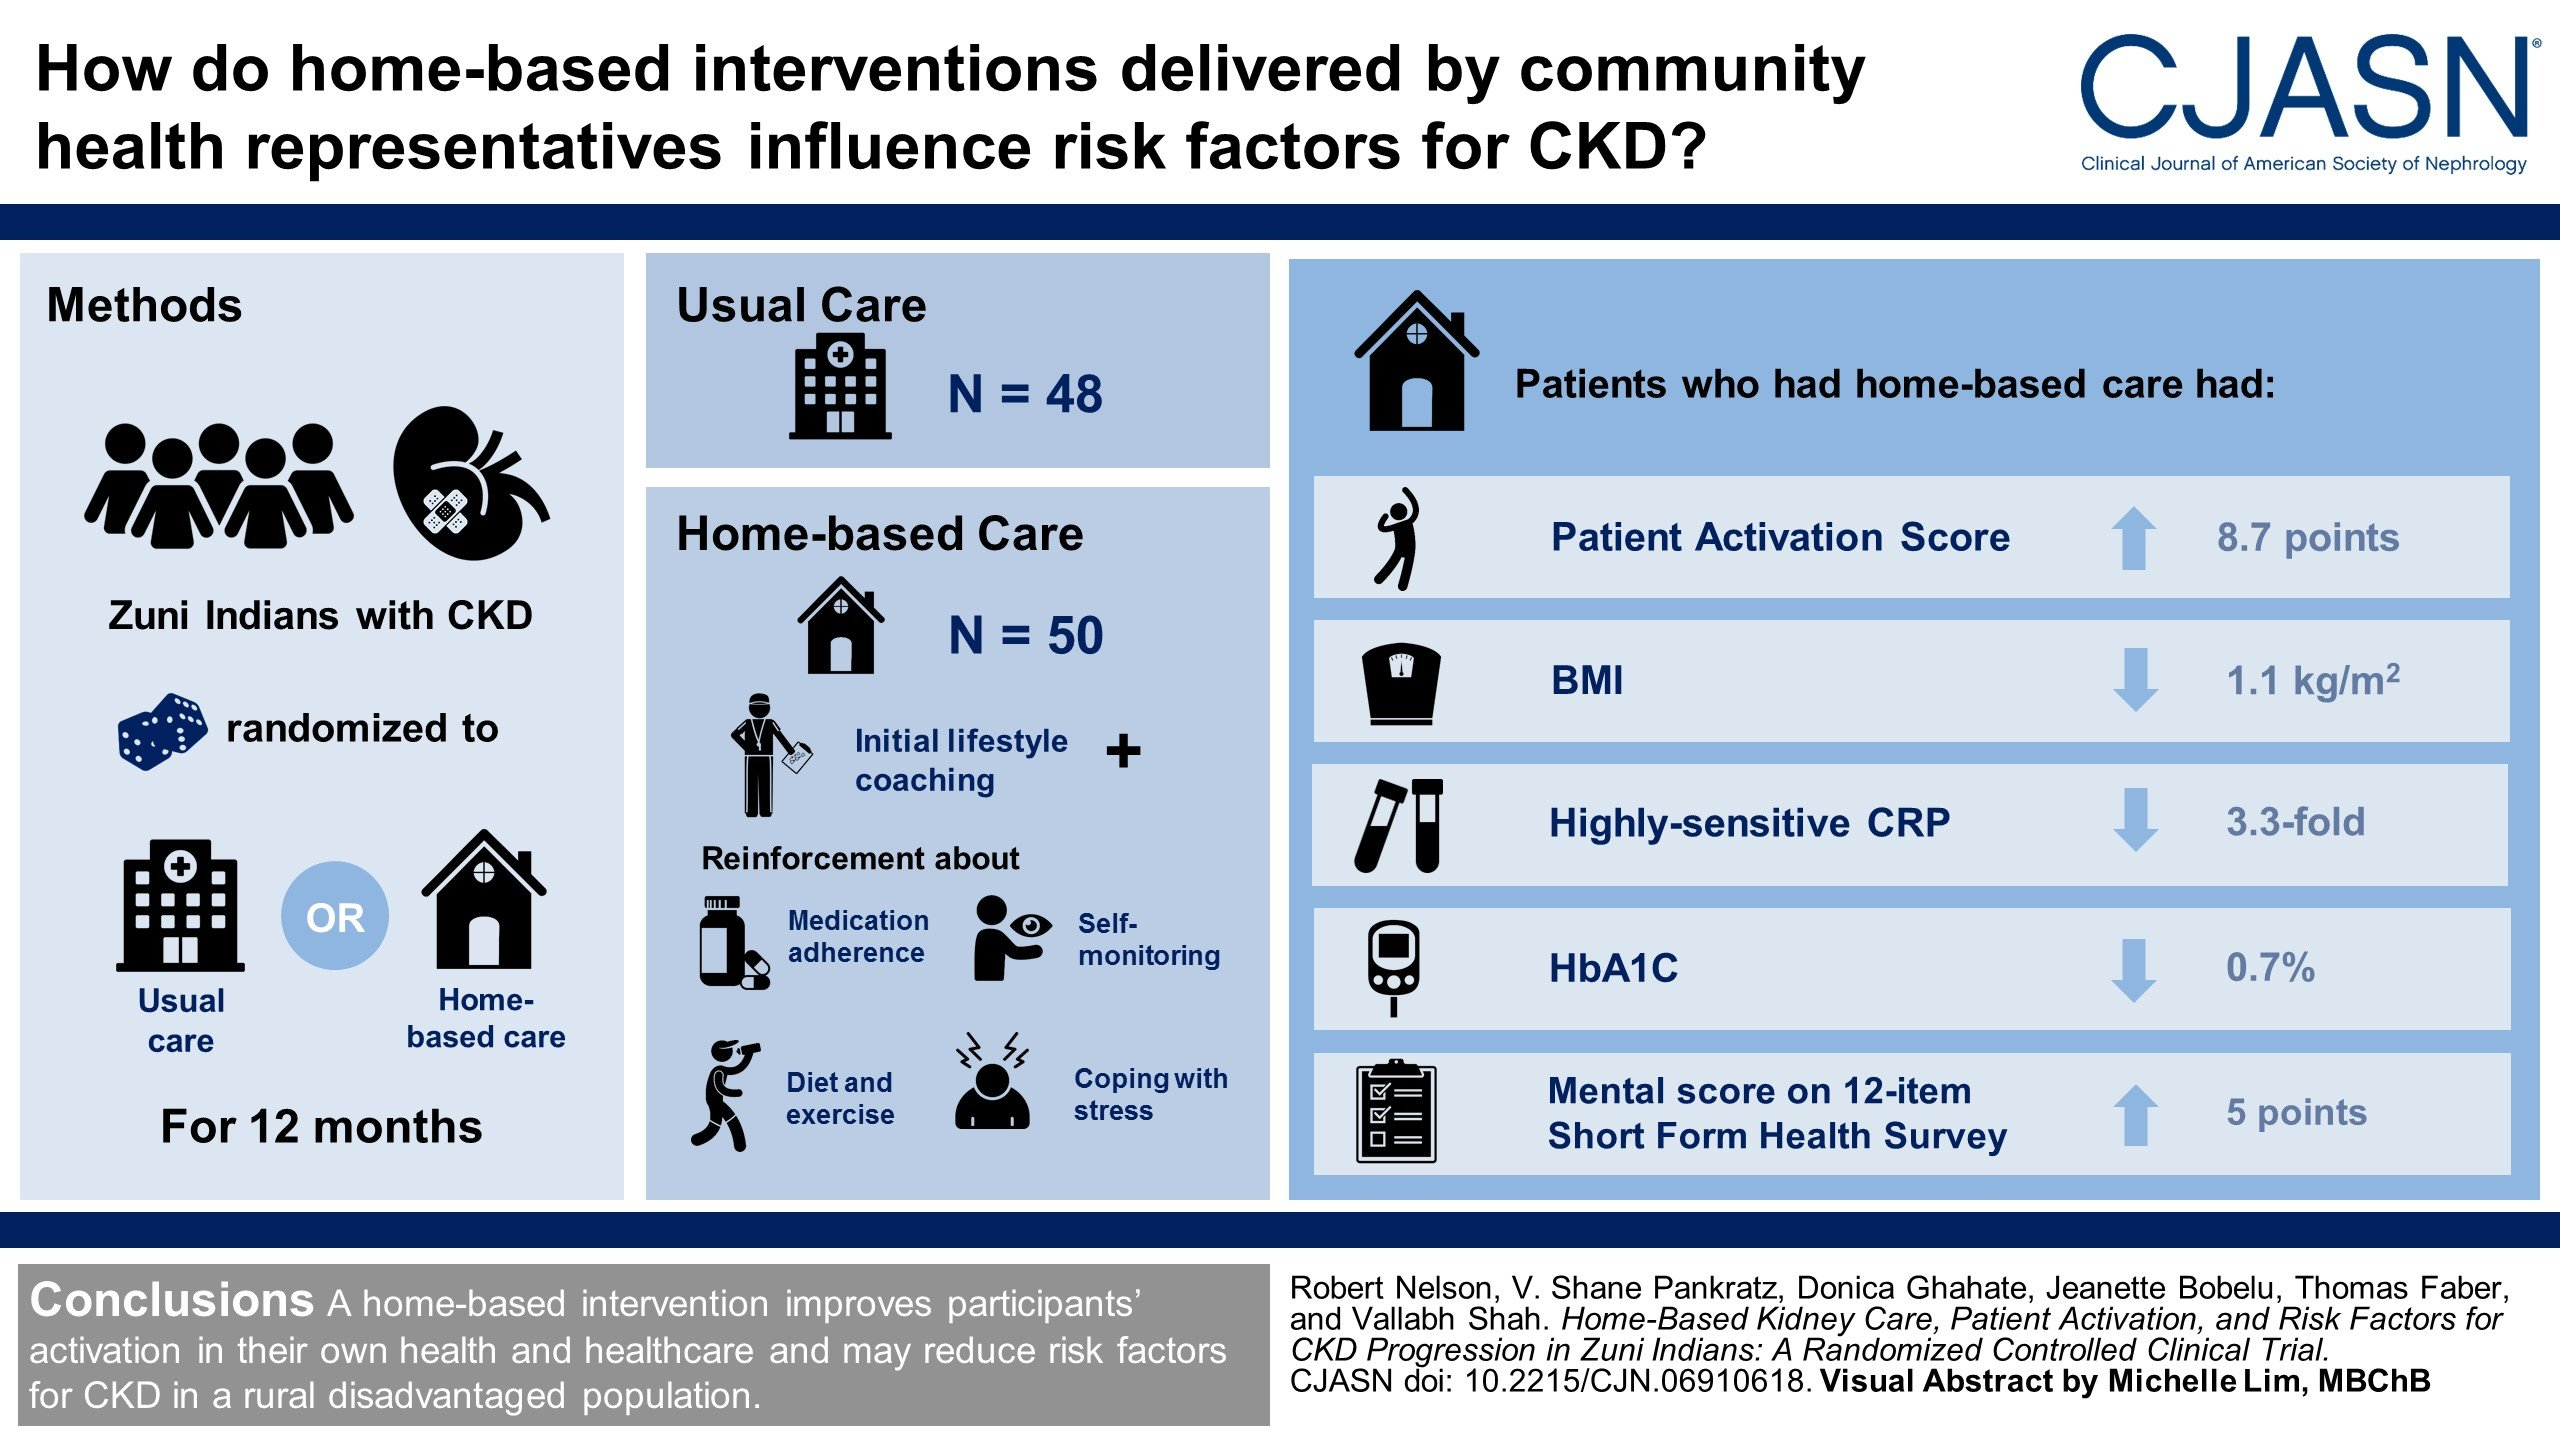 Home-based visits benefit rural patients with kidney disease